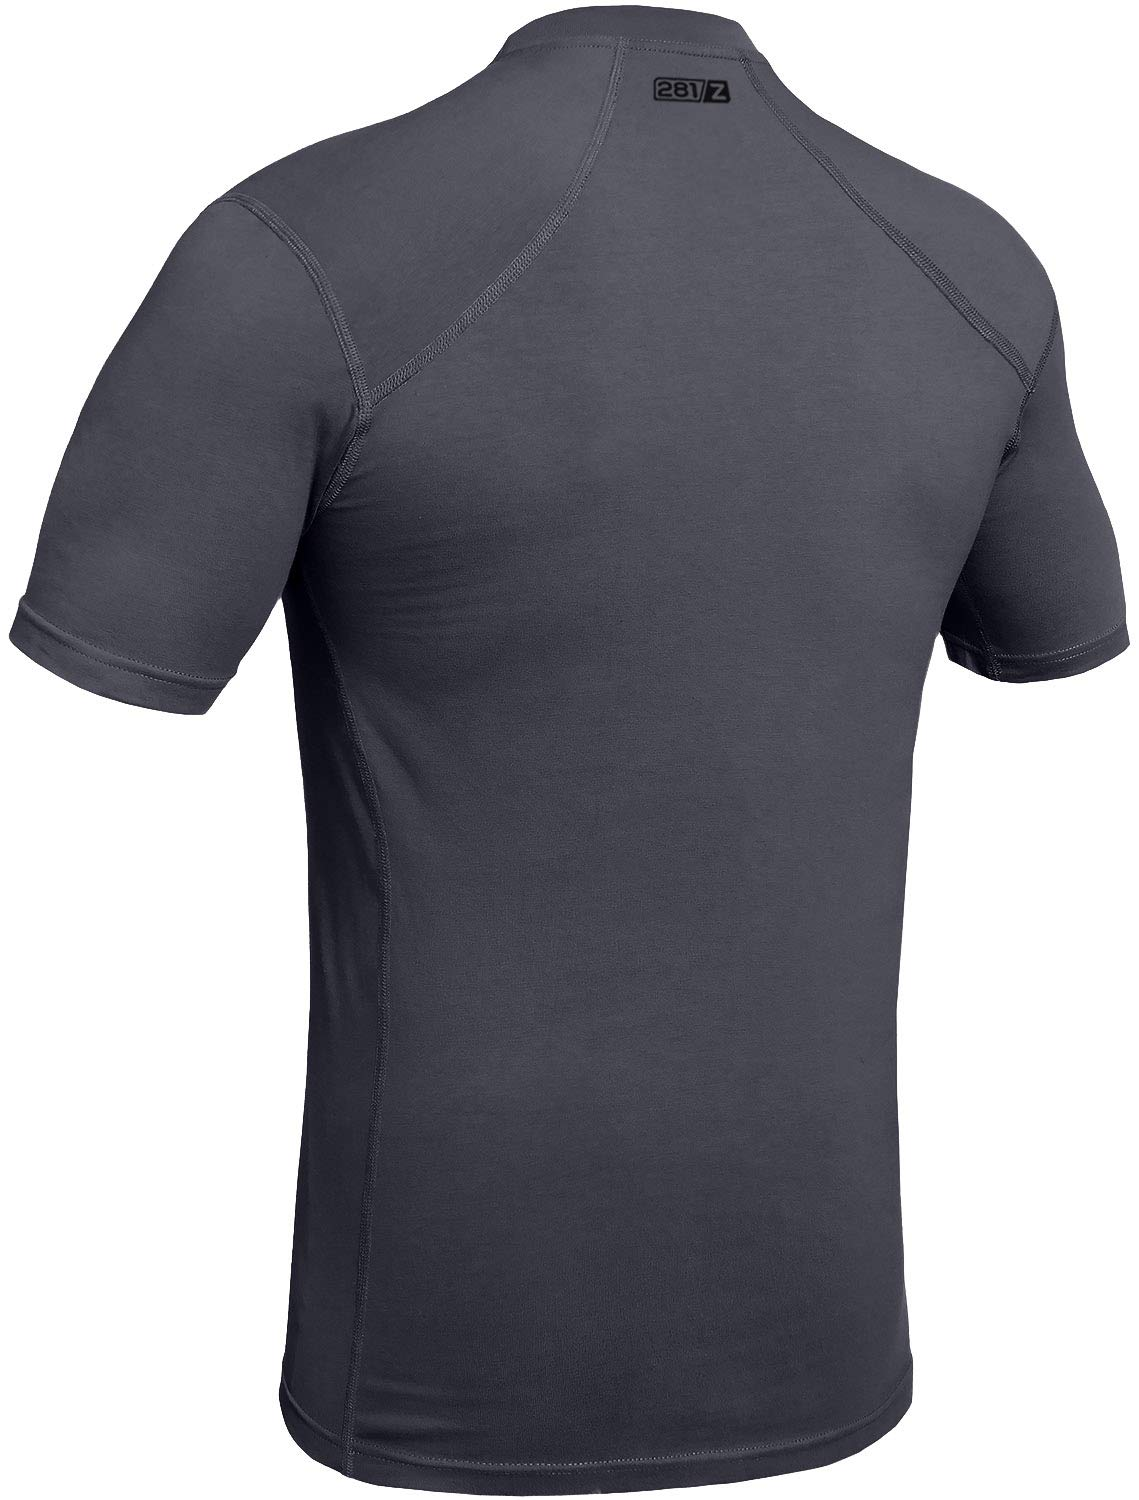 281Z Military Stretch Cotton Underwear T-Shirt - Tactical Hiking Outdoor - Punisher Combat Line (Graphite, Large) by 281Z (Image #2)